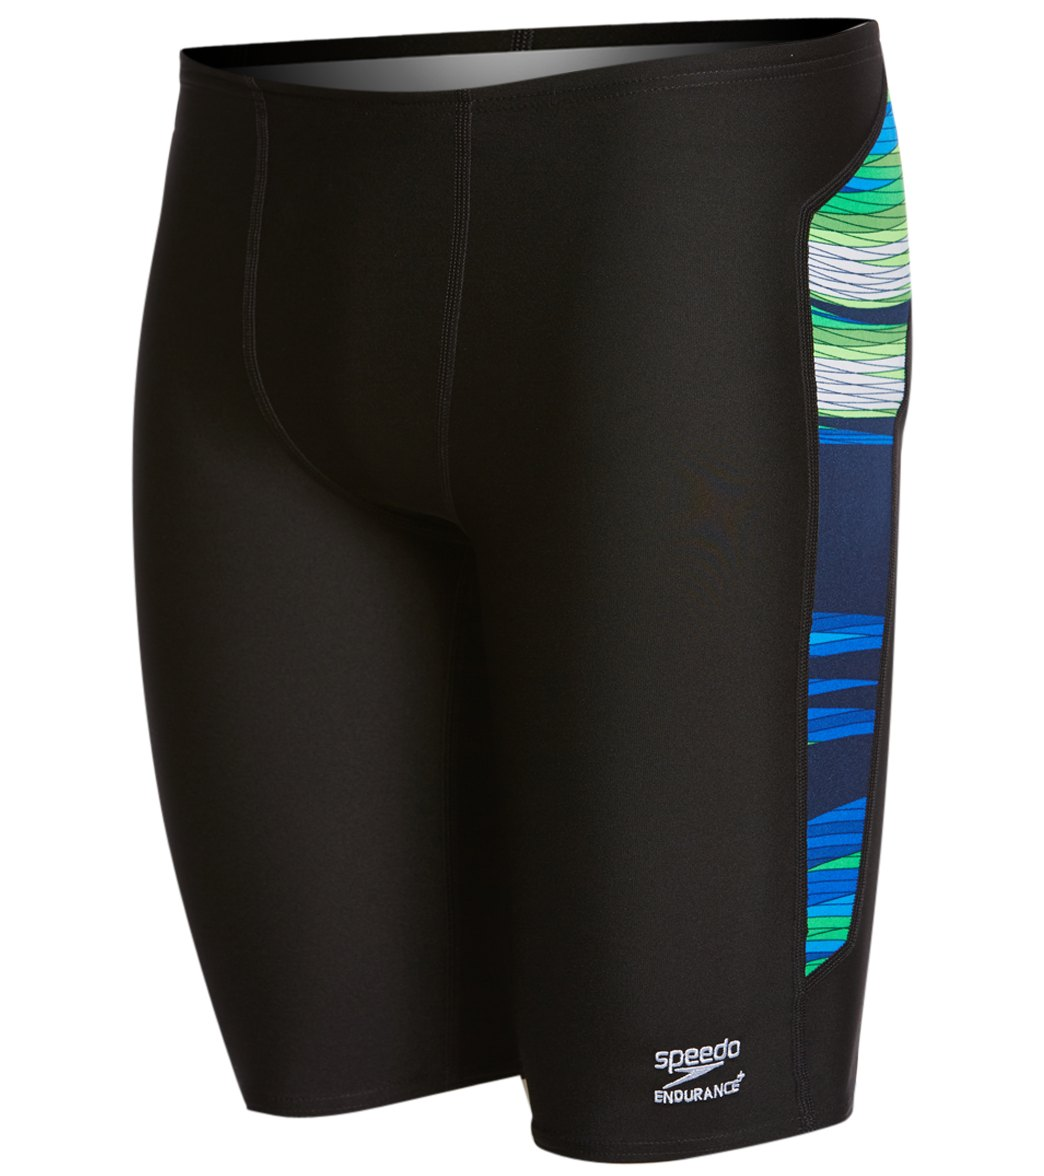 870bf43e17 Speedo Endurance+ Men's Havoc State Jammer Swimsuit at SwimOutlet.com -  Free Shipping